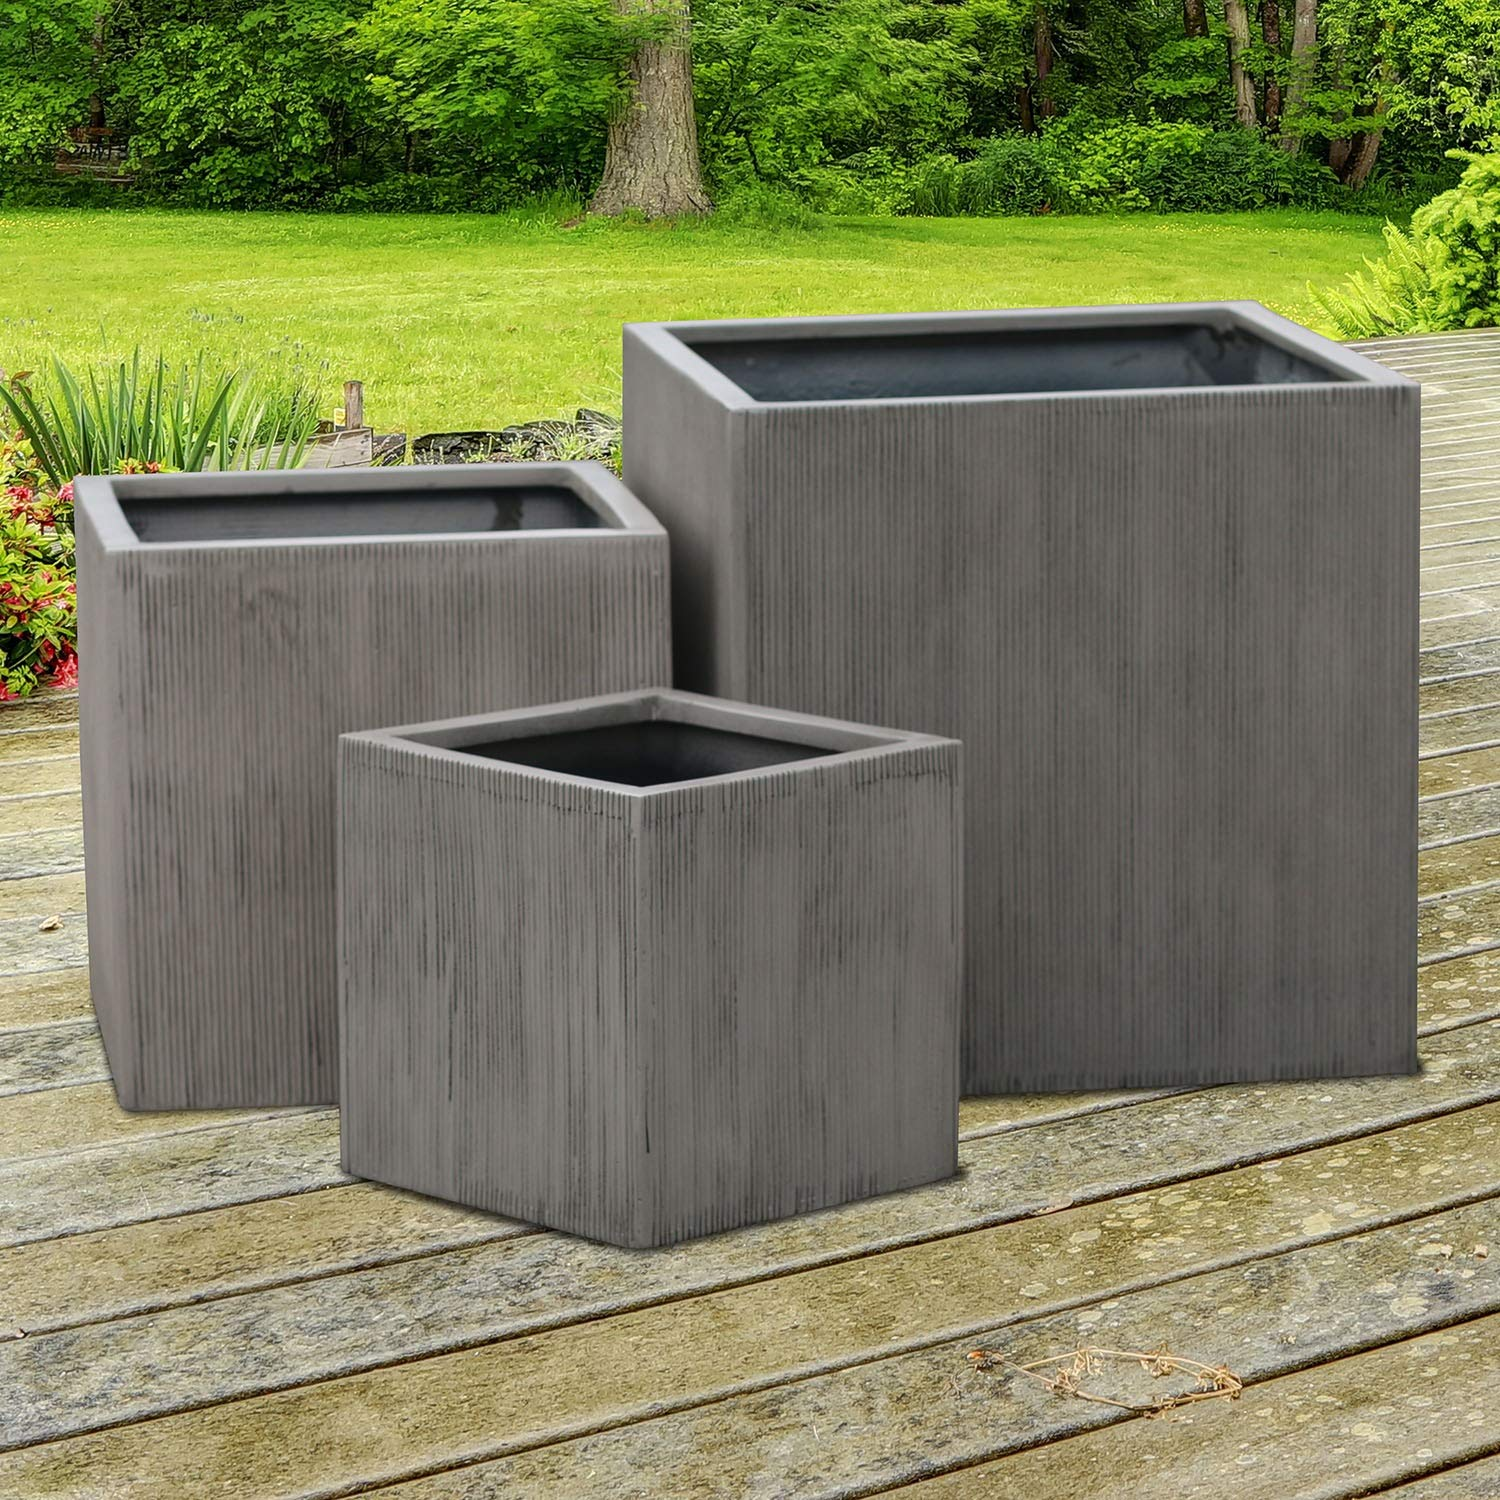 Square Planter - Cube Shaped Vertical Line Indoor Outdoor Flower Pot Brown Cement Color (20'' Inch) by Vase Source (Image #3)